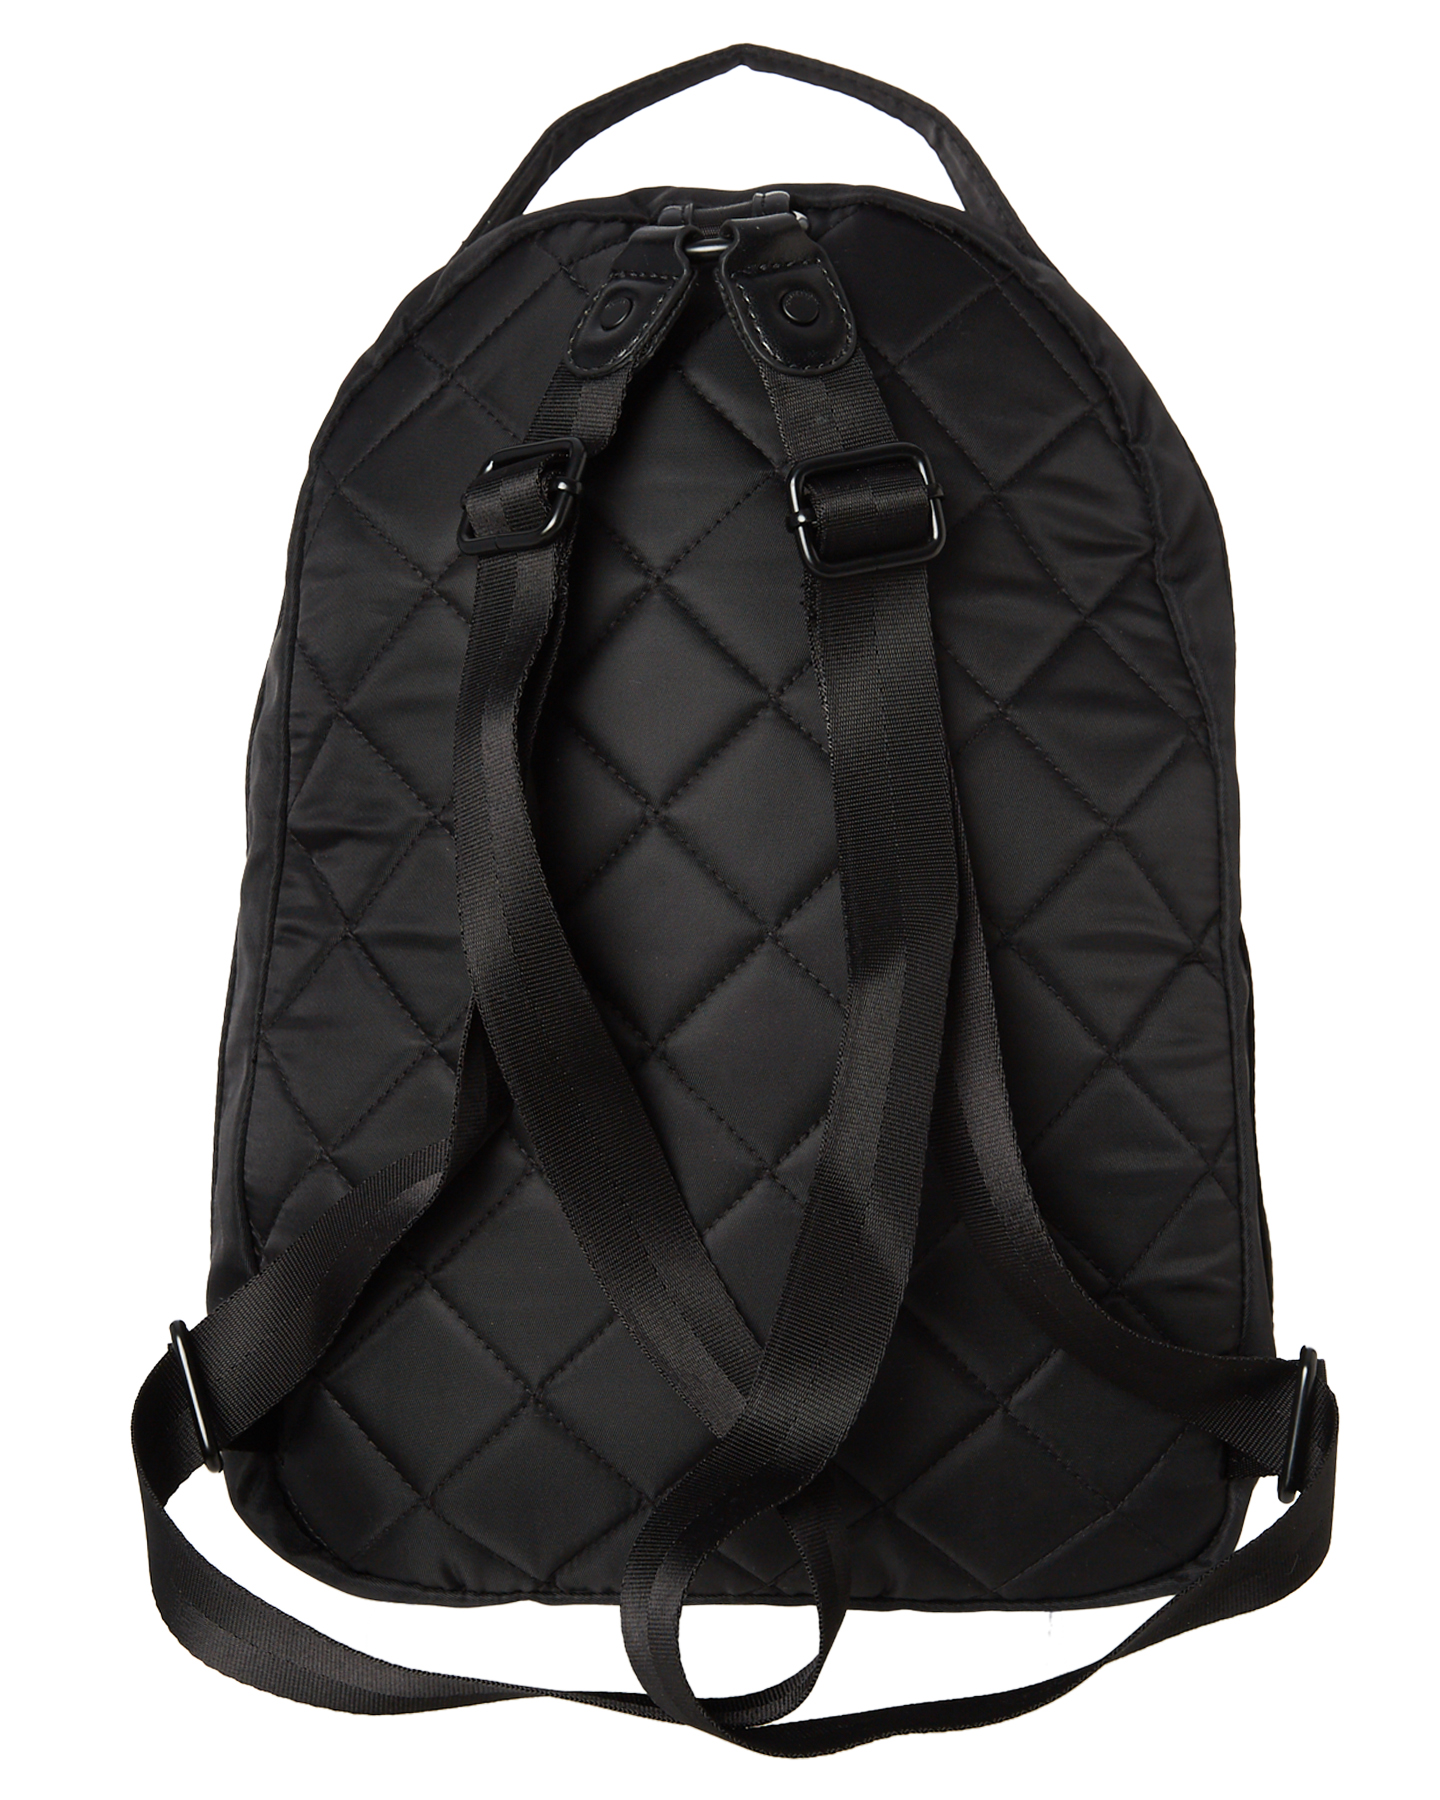 ... BLACK WOMENS ACCESSORIES CONVERSE BAGS + BACKPACKS - 10006385BLK ... 9be839fb7704f